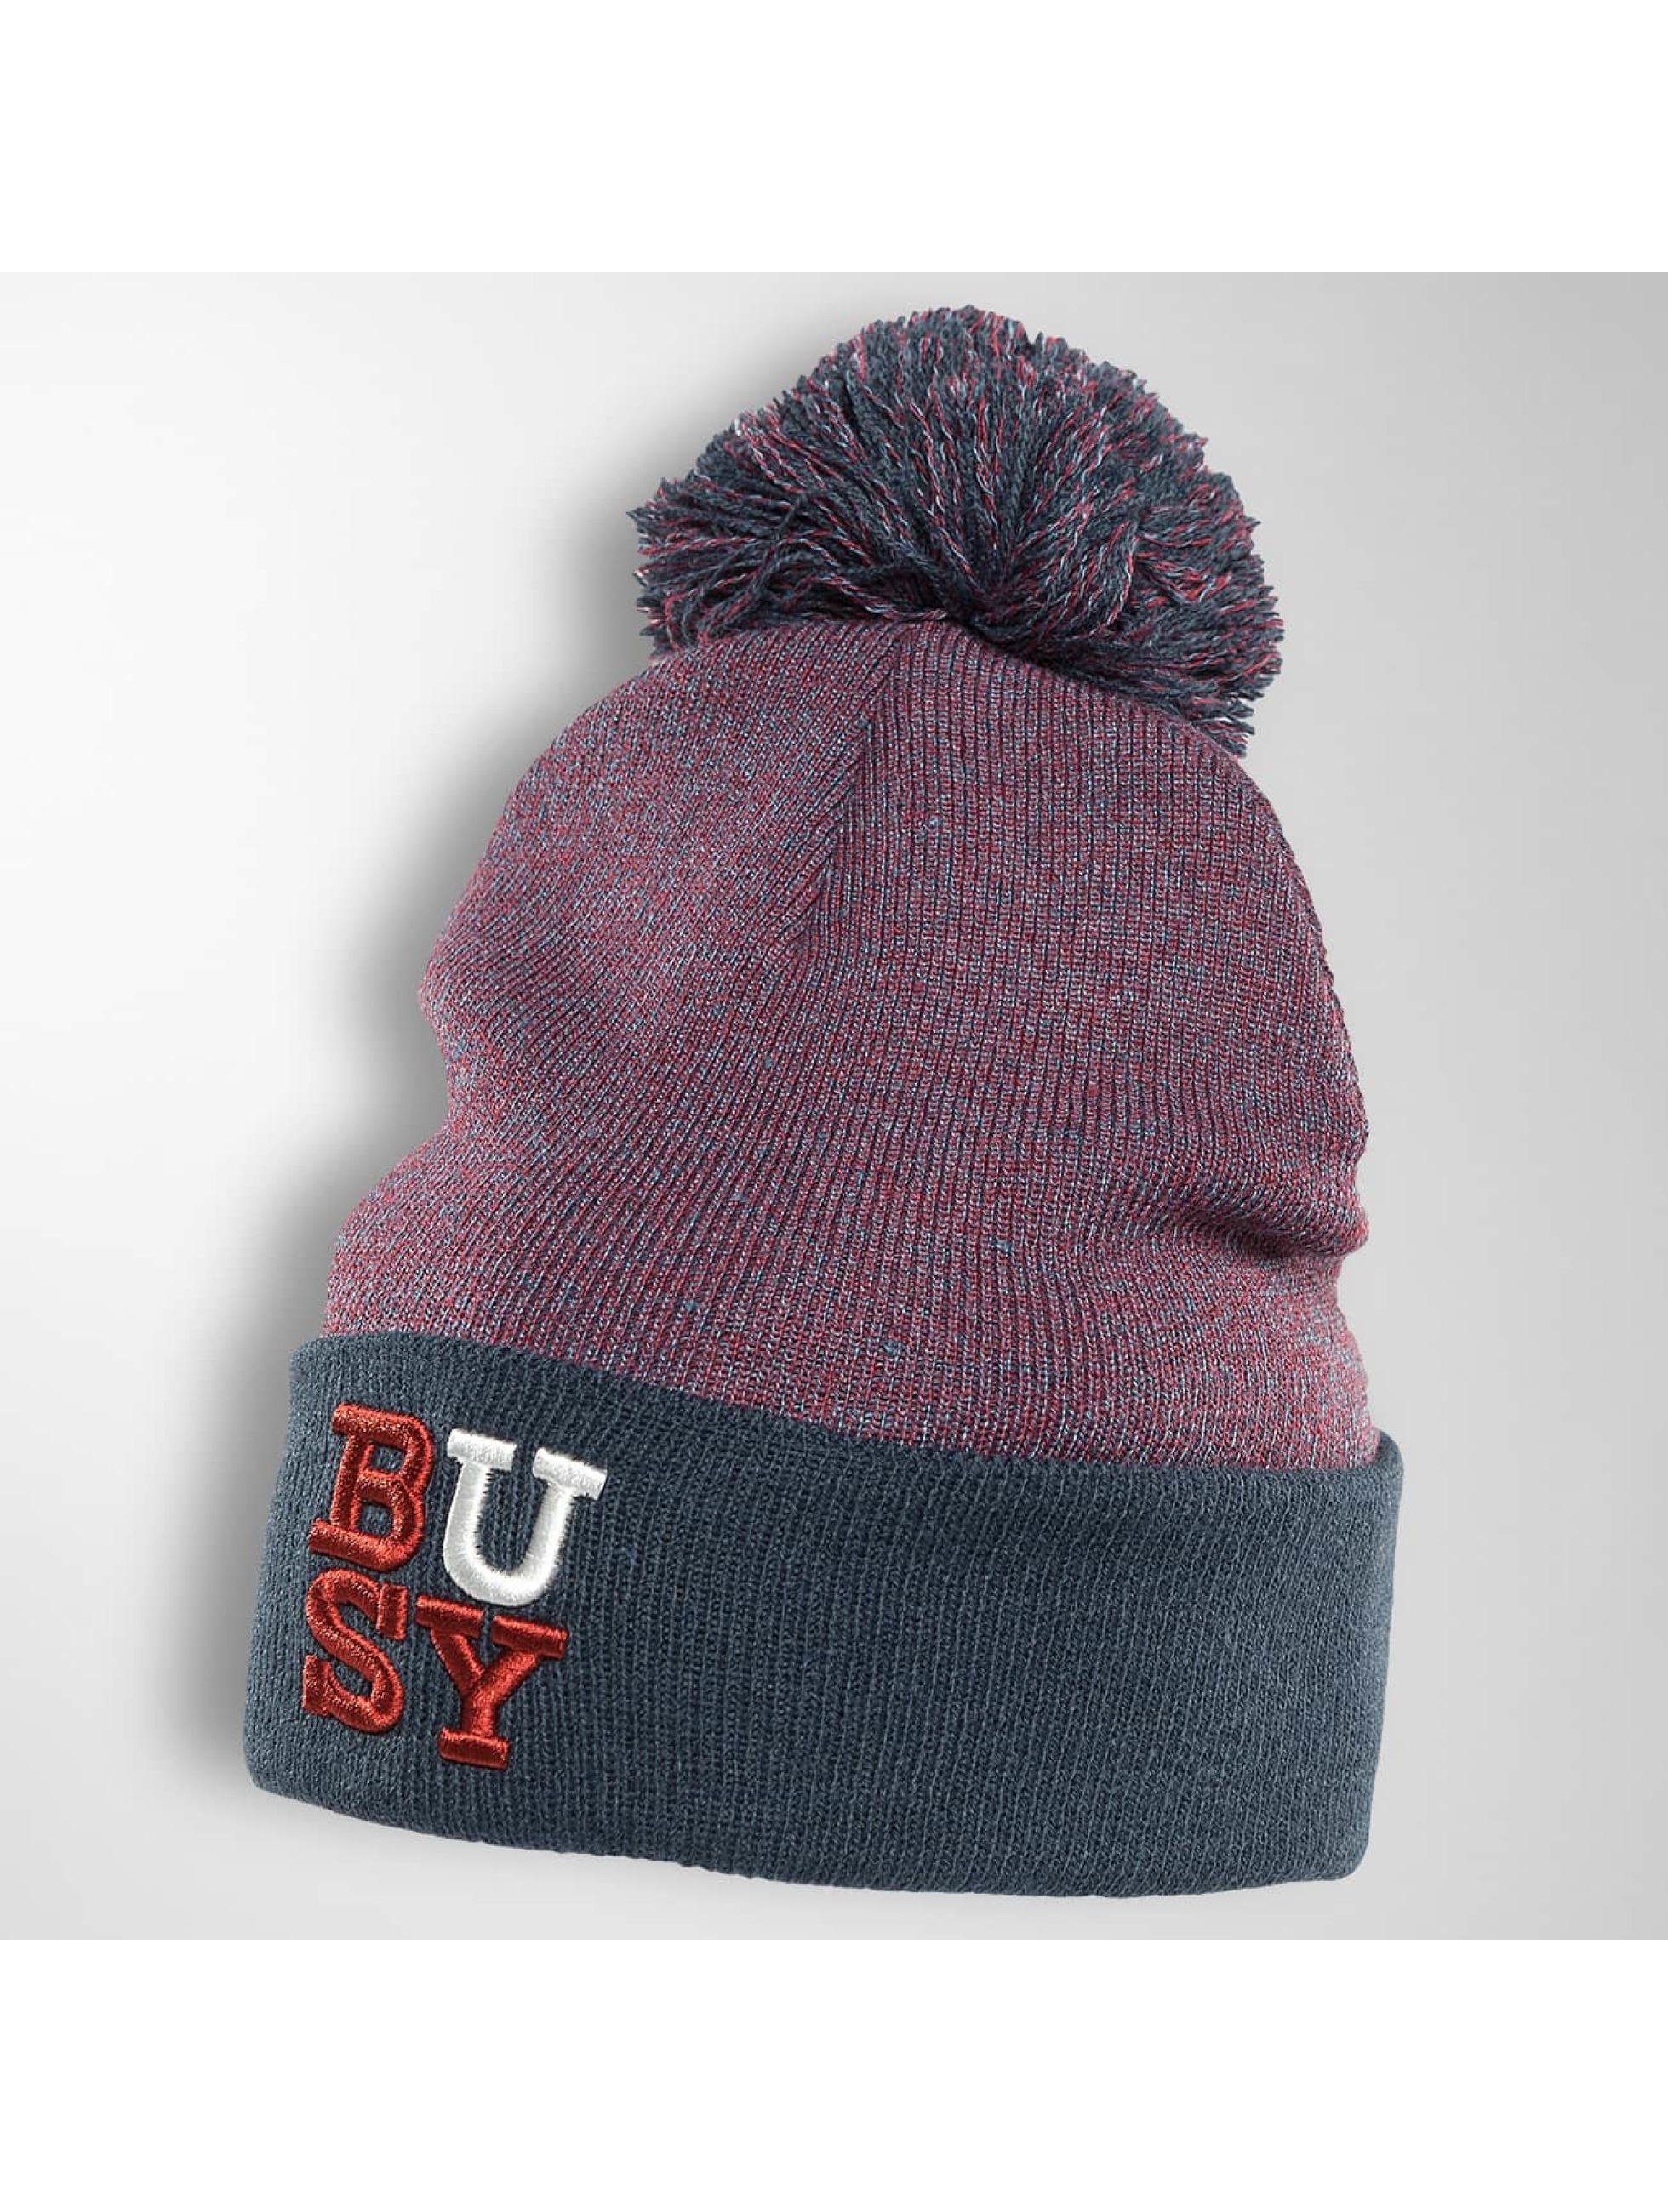 TrueSpin Beanie 4 Letters red